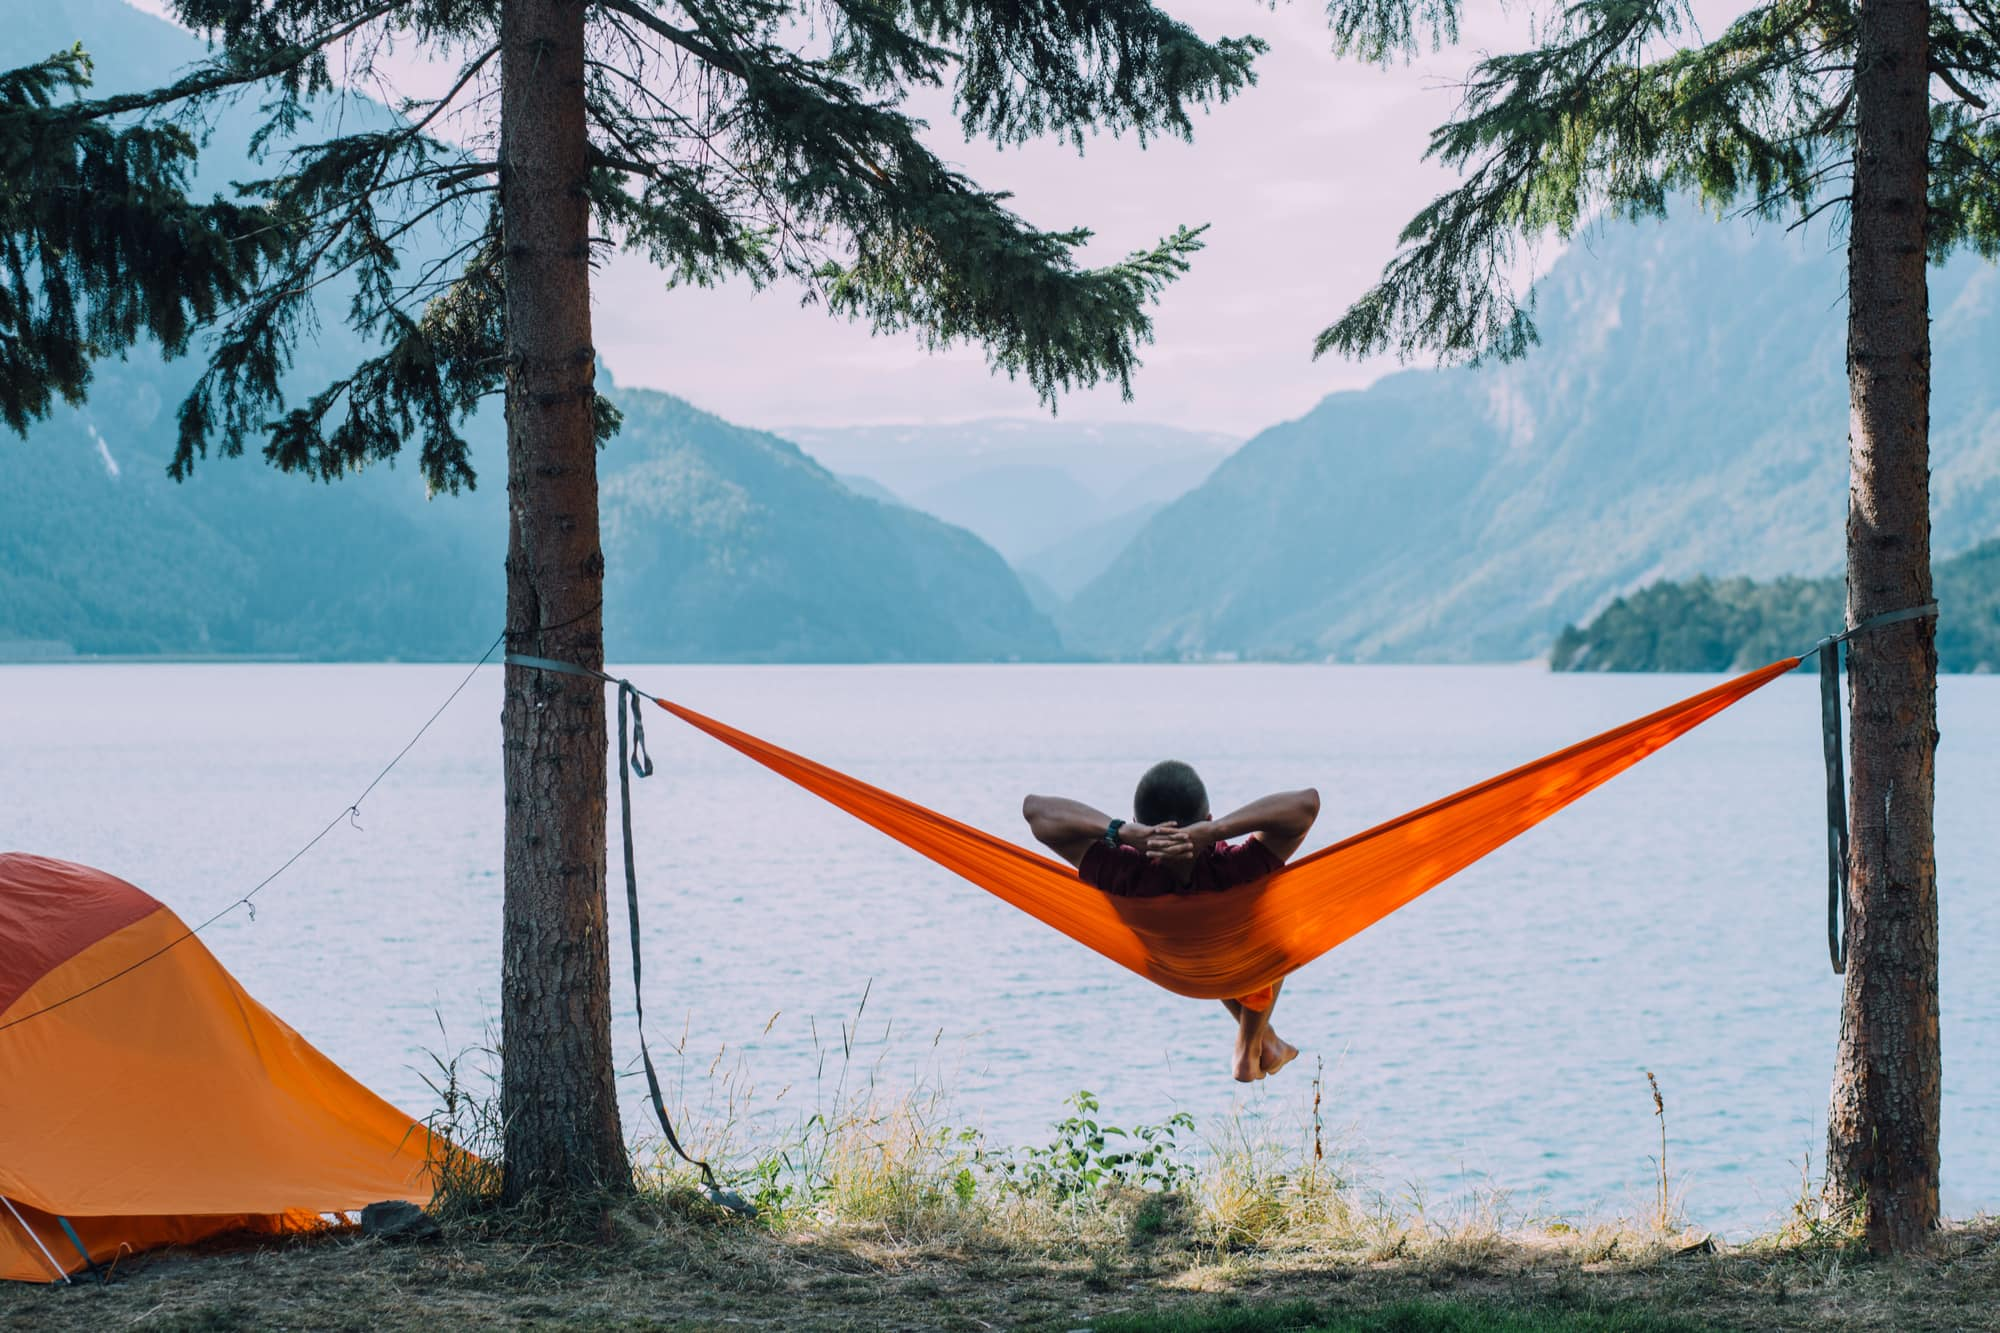 What-you-need-to-stay-warm-camping-at-night-5